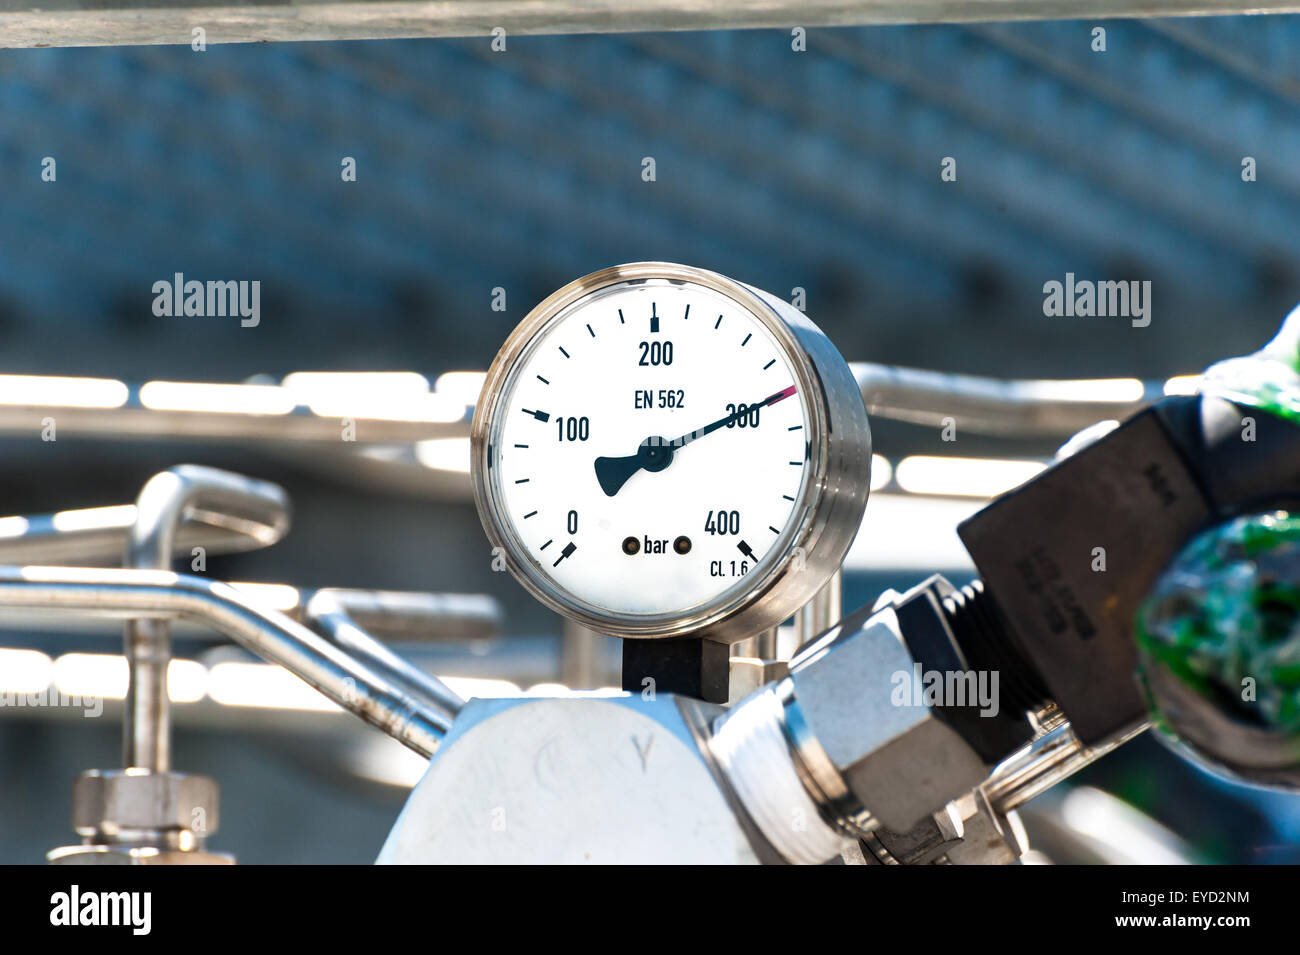 Pressure gauge to measure pressure in the system. High pressure gas - Stock Image